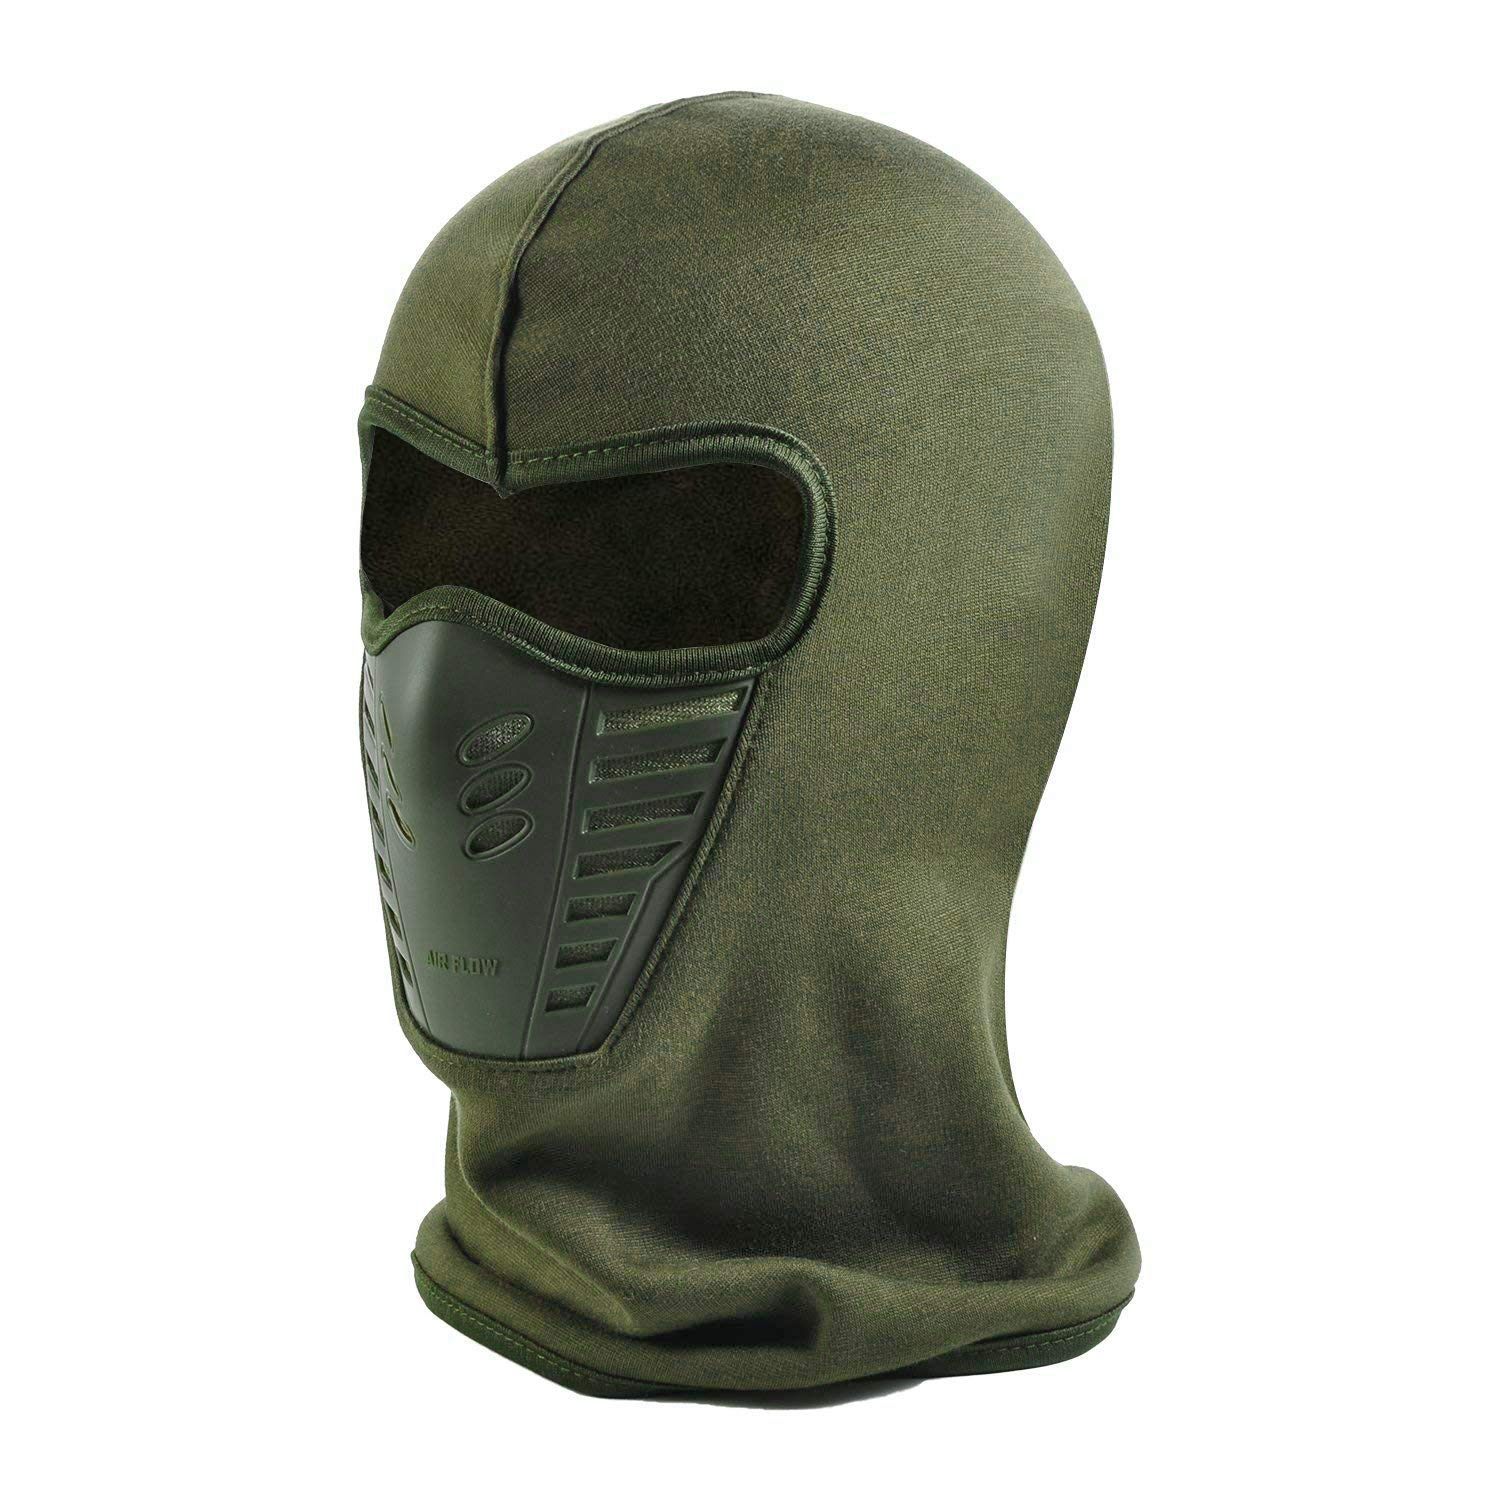 Winter Balaclava Mask Windproof Fleece Ski Mask Warm Anti-dust Hat Ninja Mask